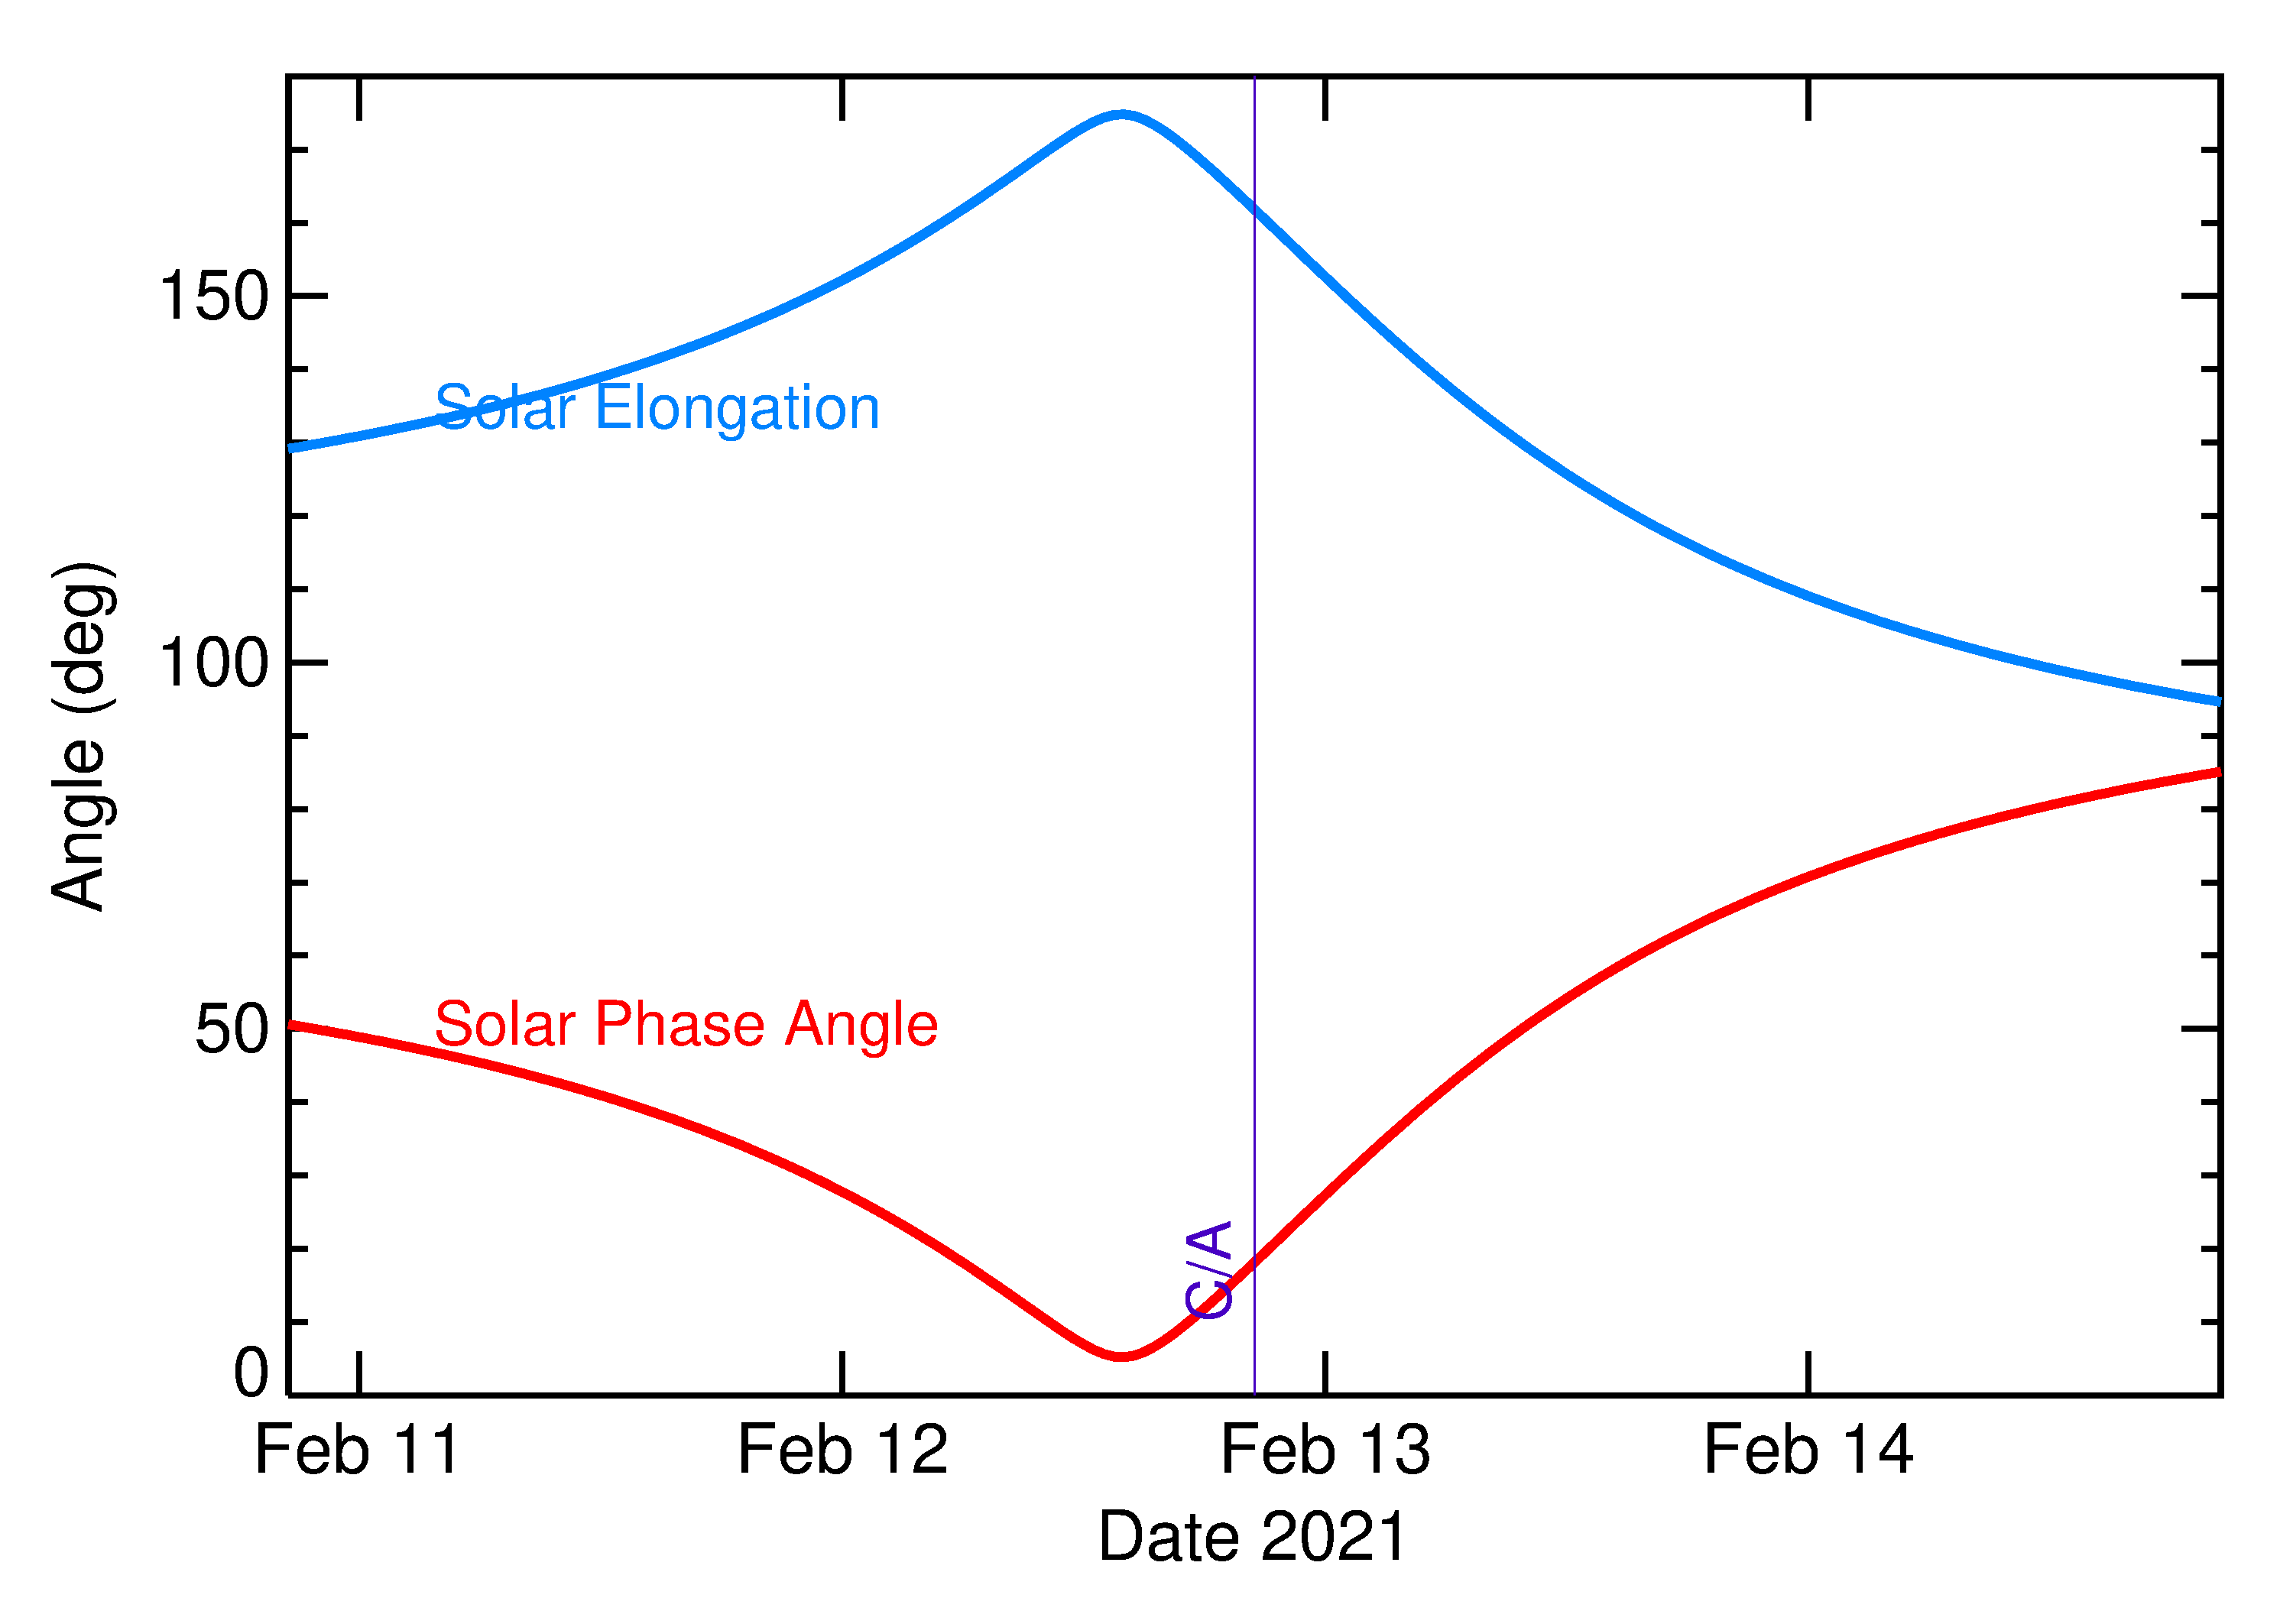 Solar Elongation and Solar Phase Angle of 2021 CC7 in the days around closest approach